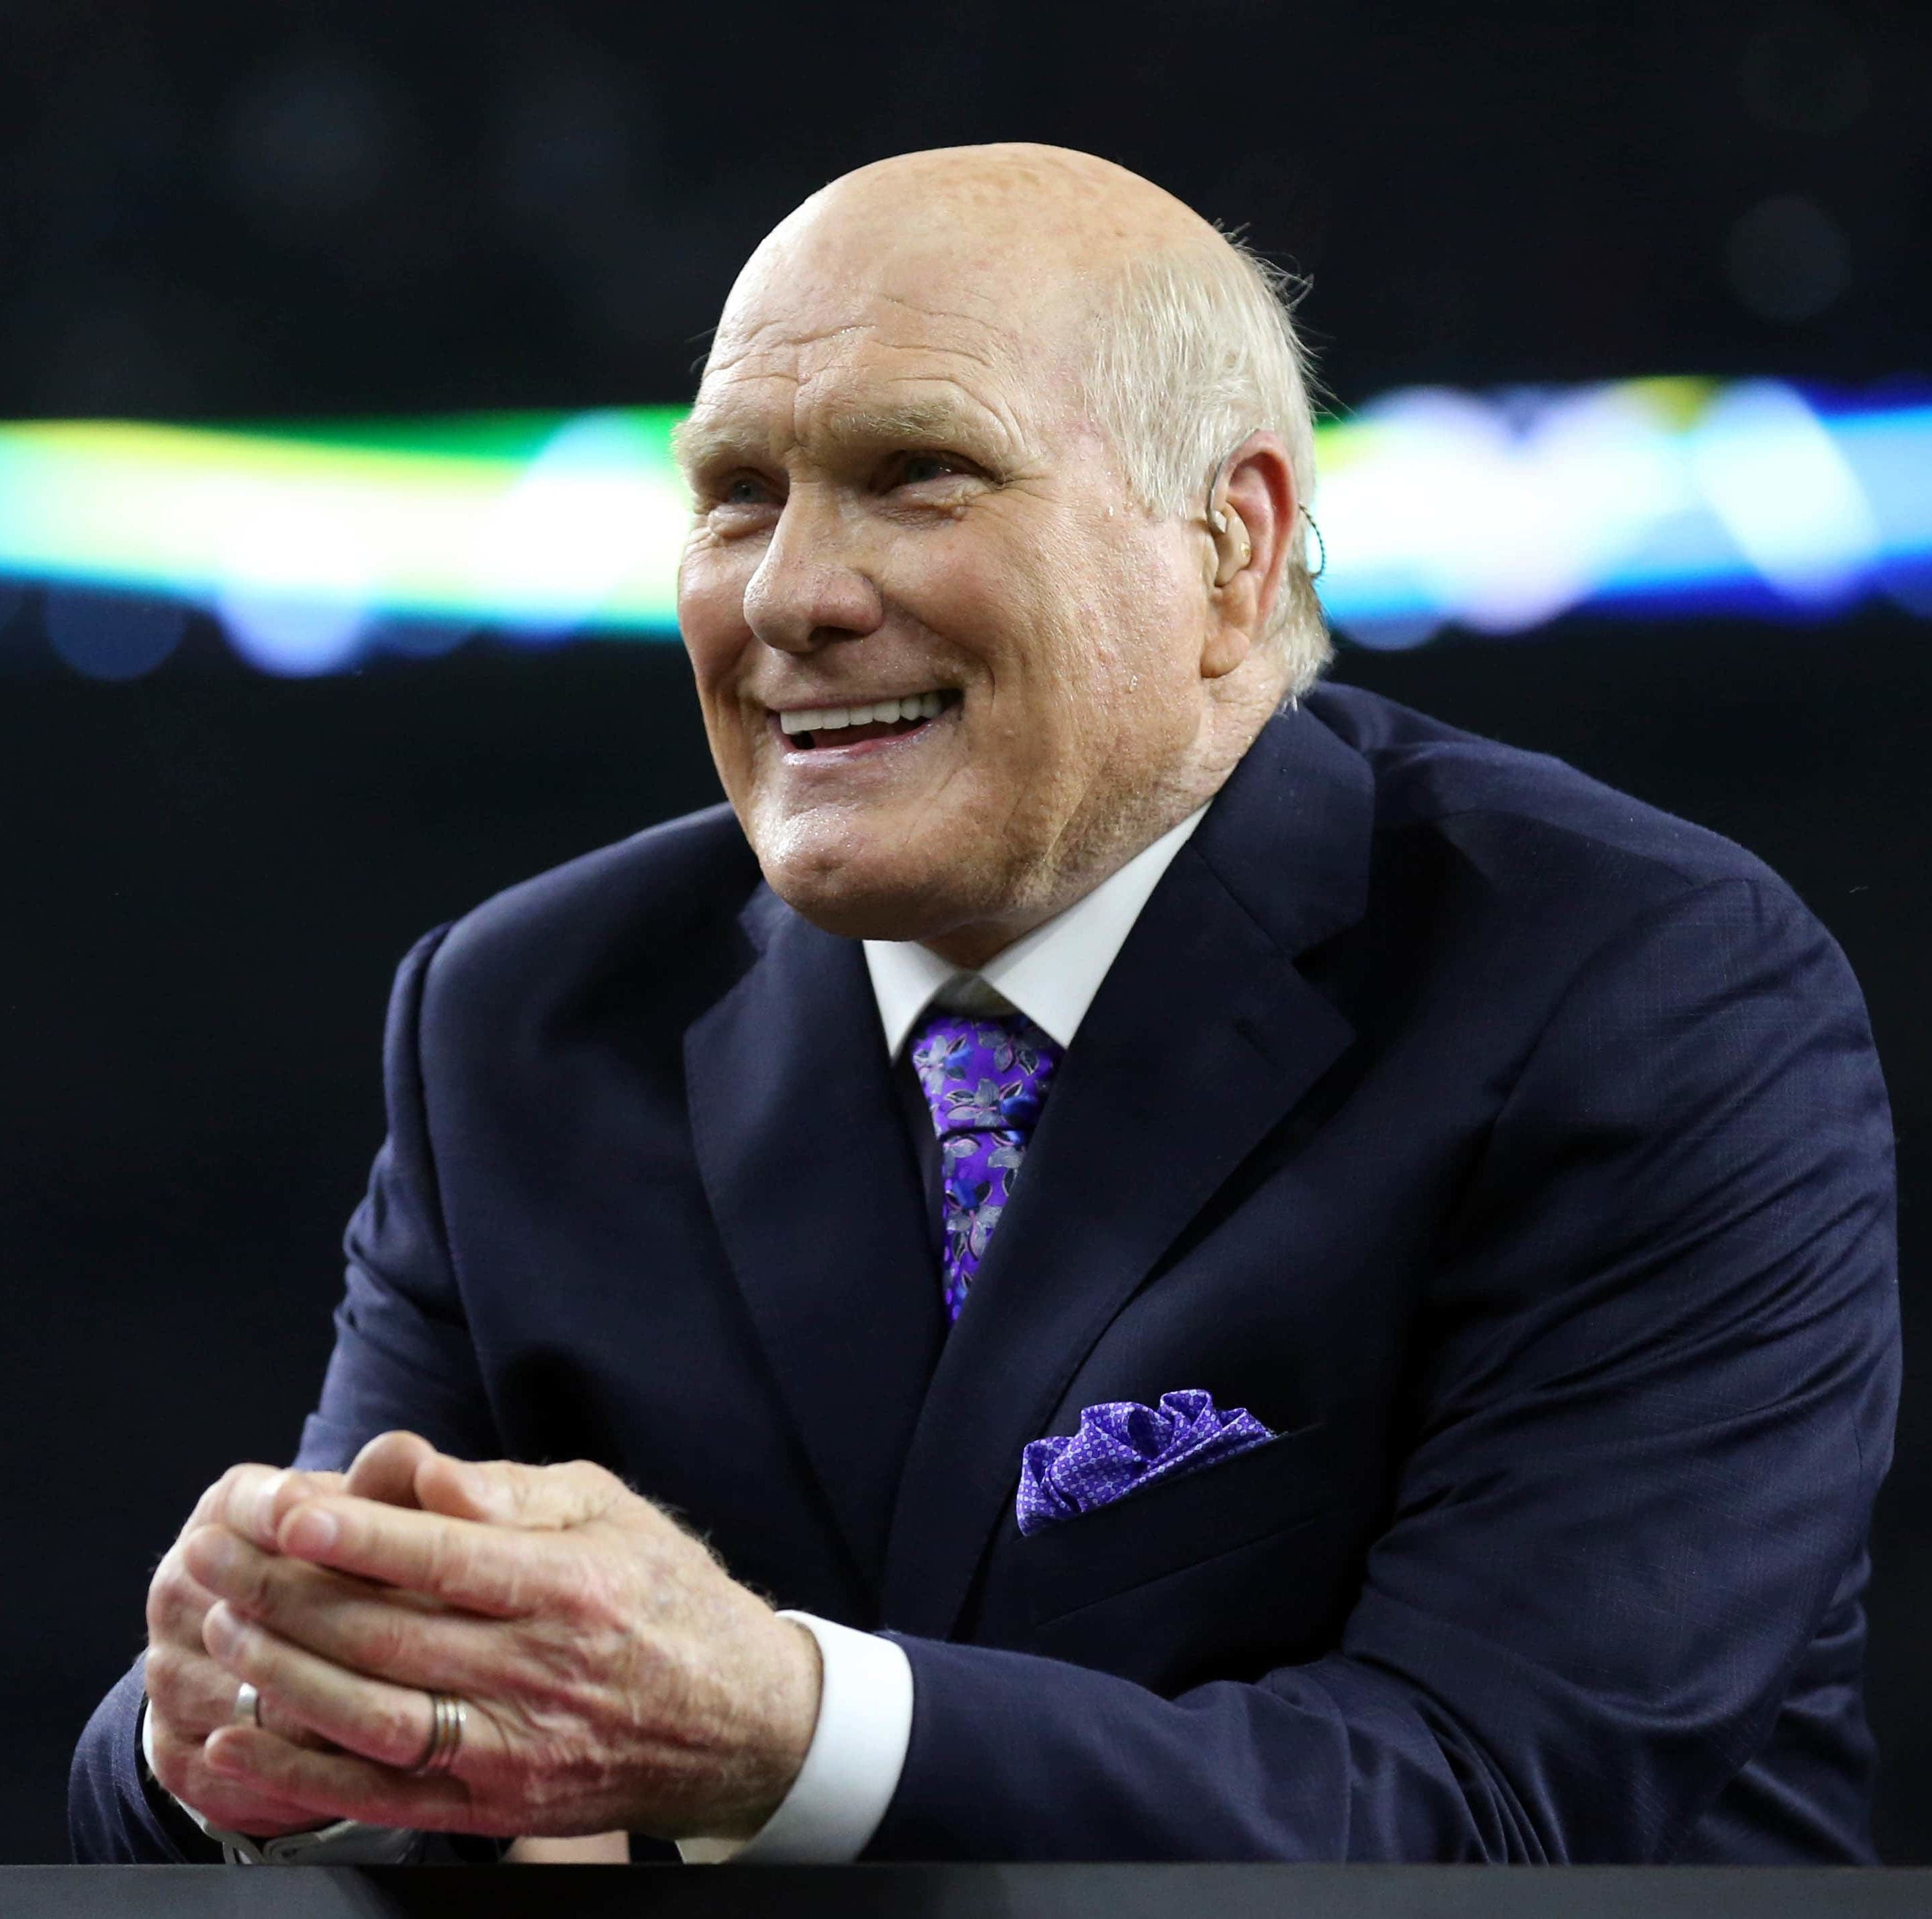 Terry Bradshaw apologizes for 'offensive' remark about Ken Jeong's background